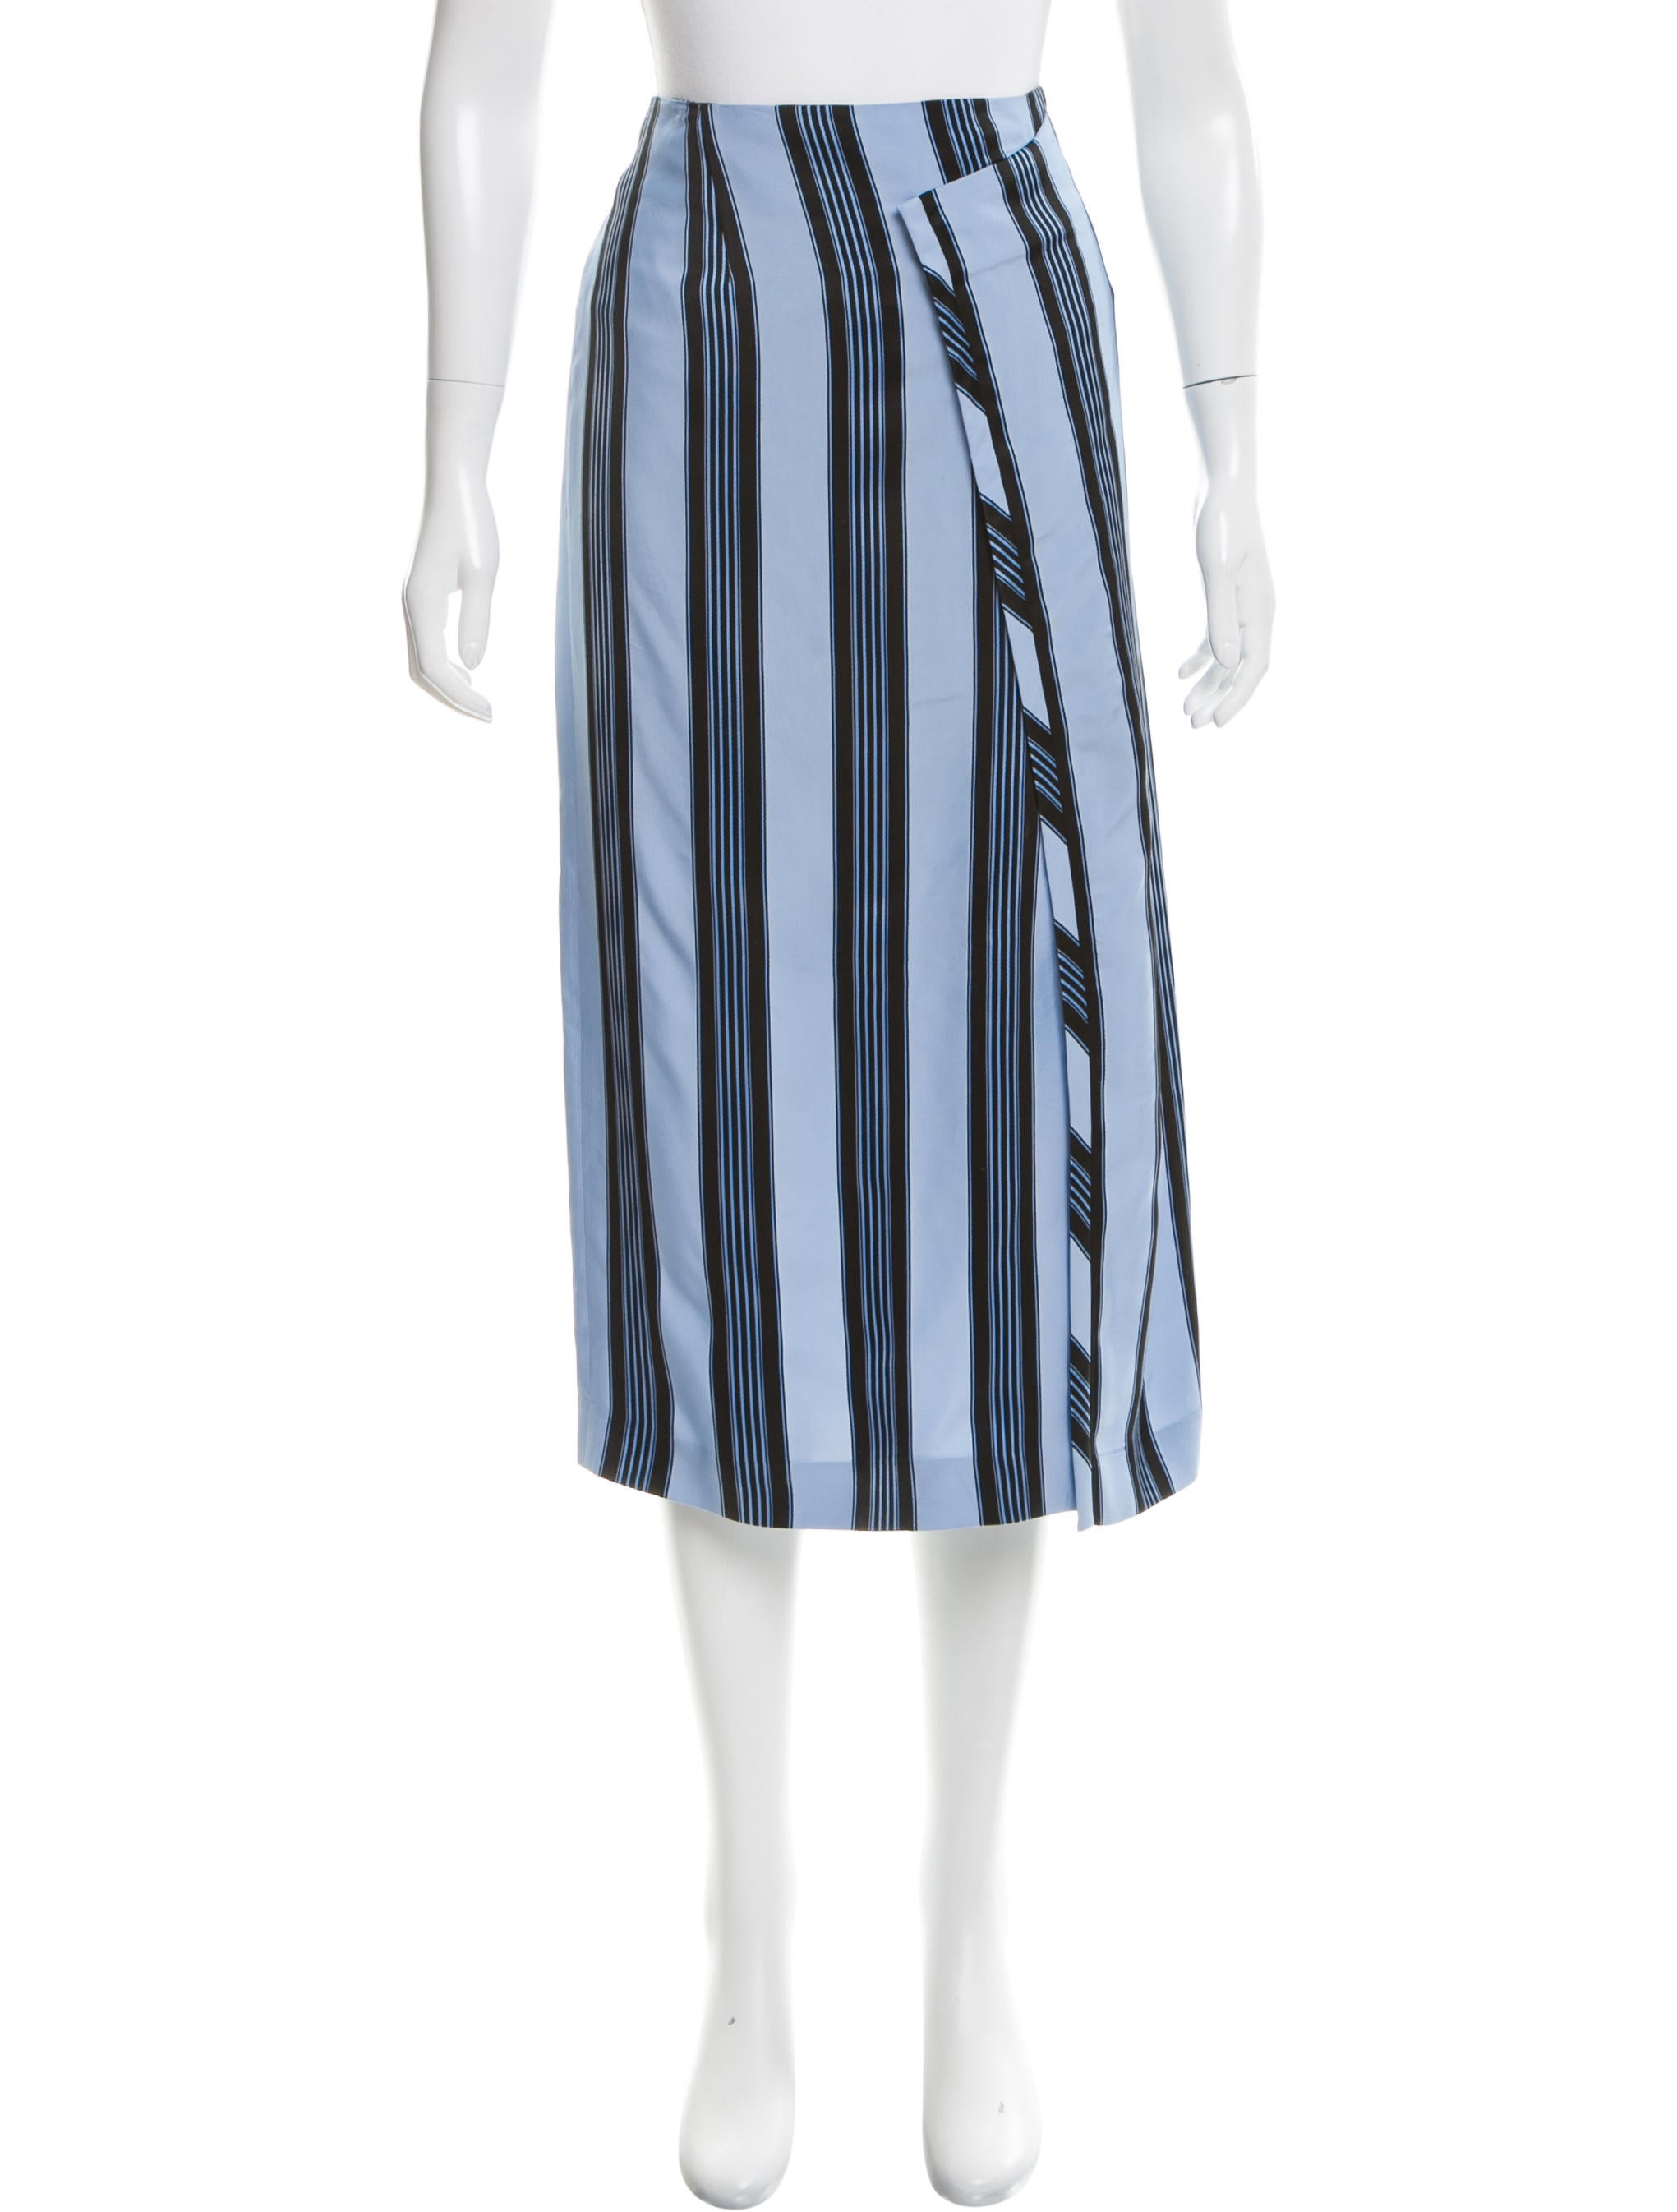 acne striped midi skirt clothing acn29219 the realreal